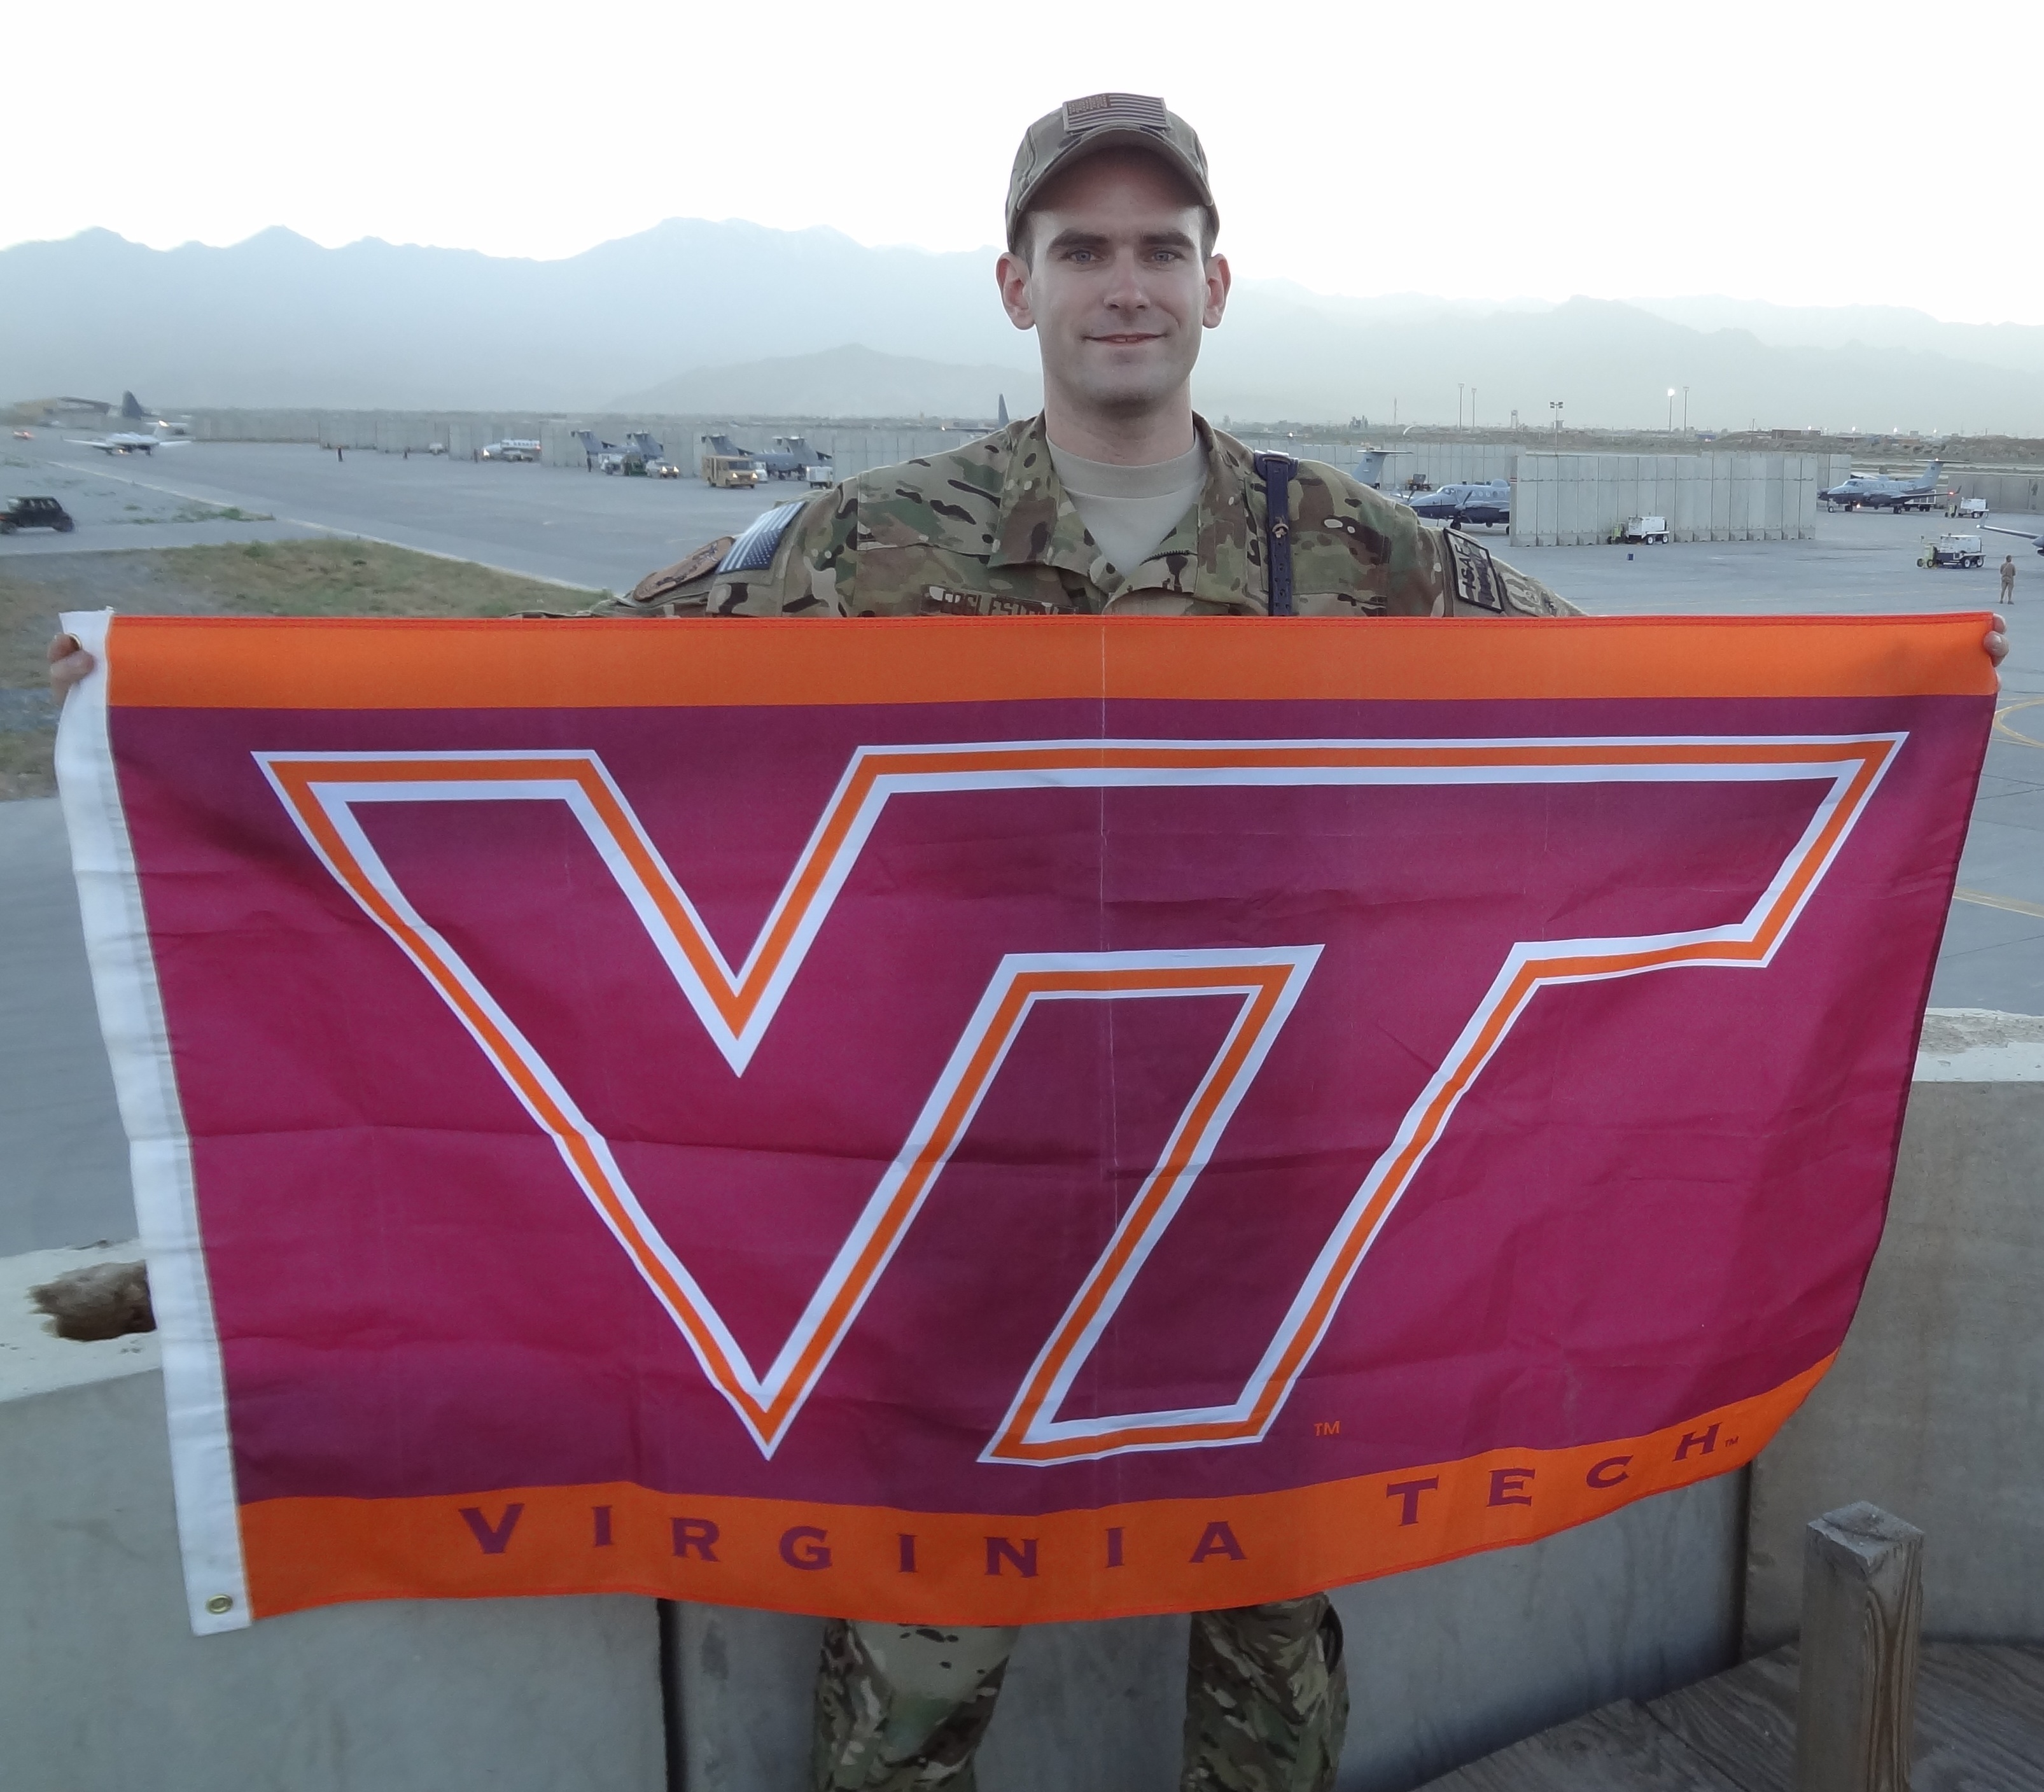 1st Lt. Josh Eggleston, U.S. Air Force, Virginia Tech Corps of Cadets Class of 2009 at Bagram Air Field, Afghanistan